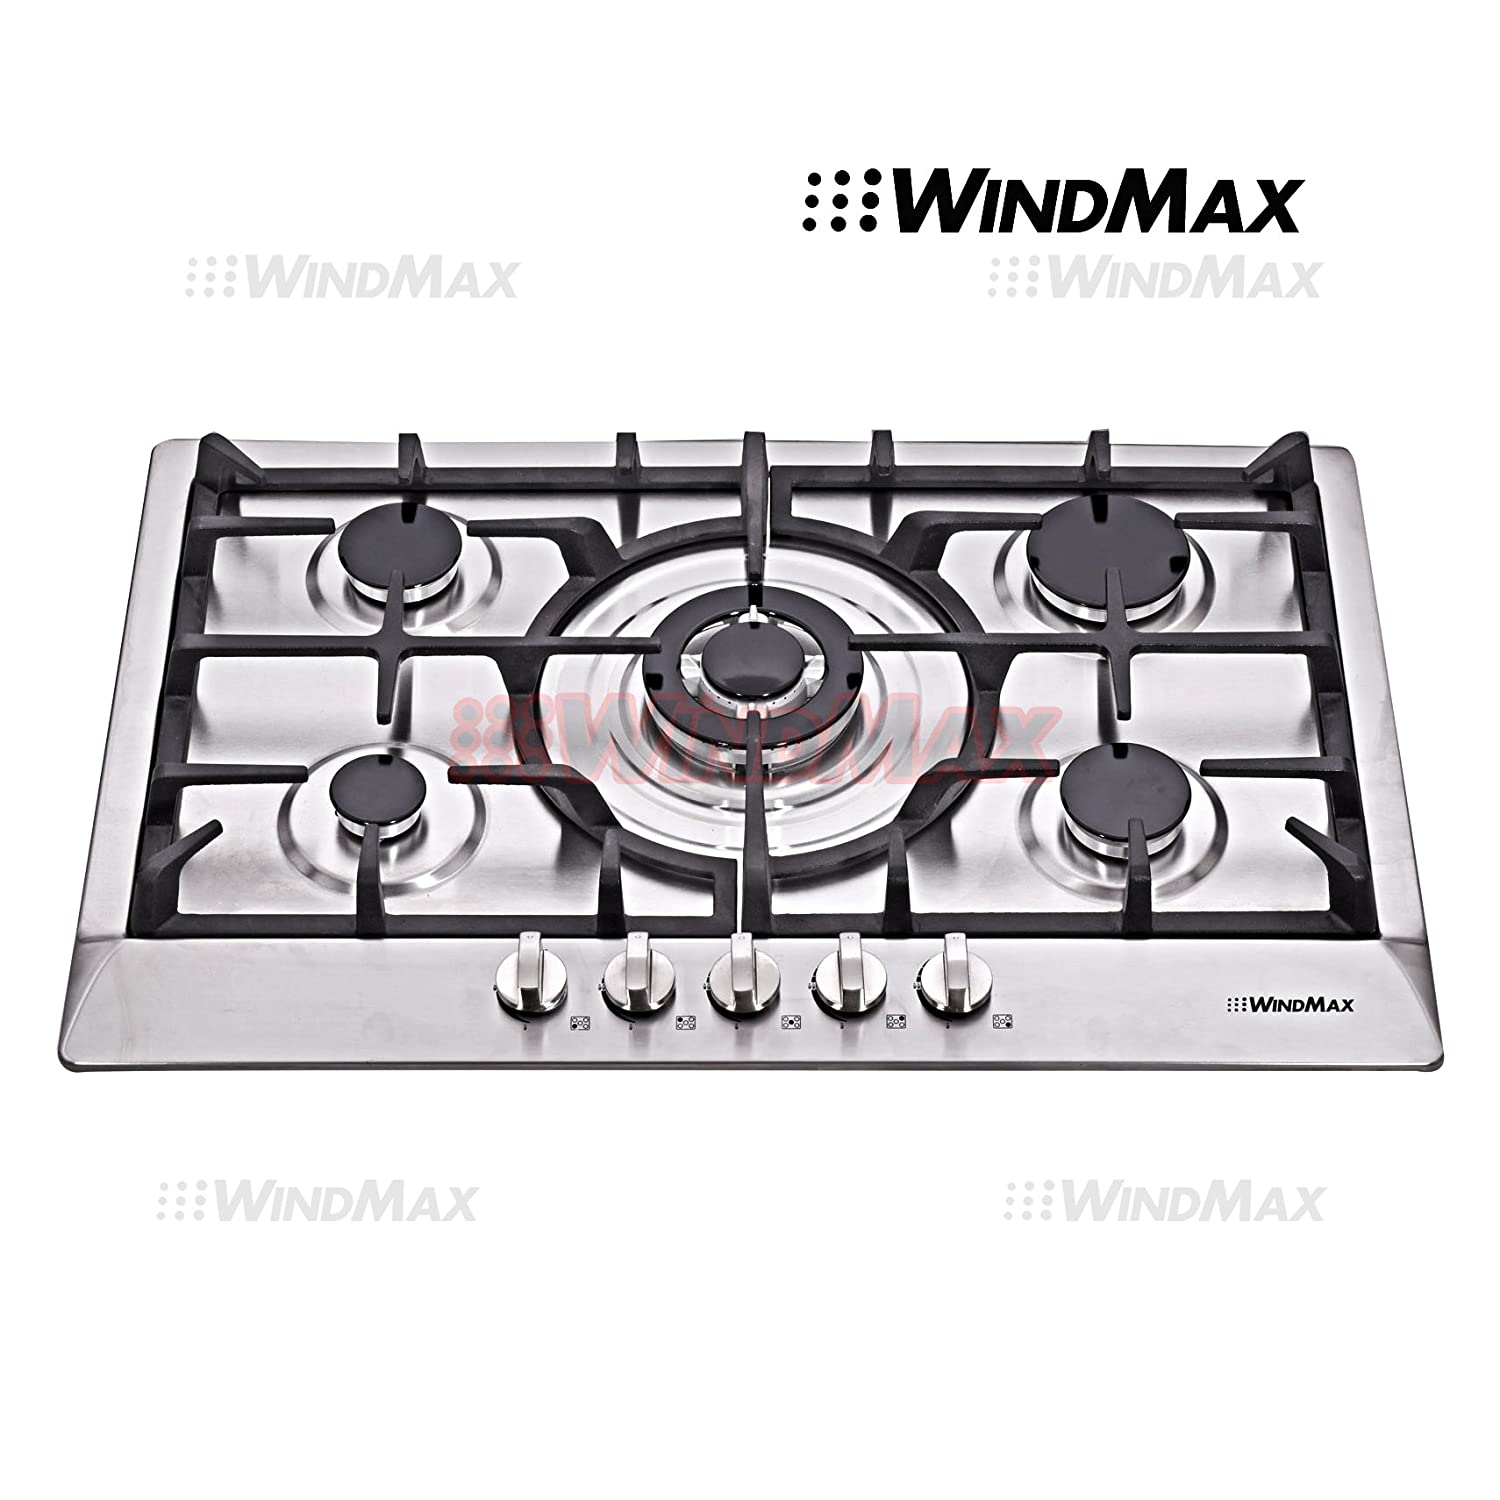 "WindMax® 30"" Stainless Steel 5 Burner Built-In Stoves NG/LPG Gas Cooktops Kitchen Cooker"